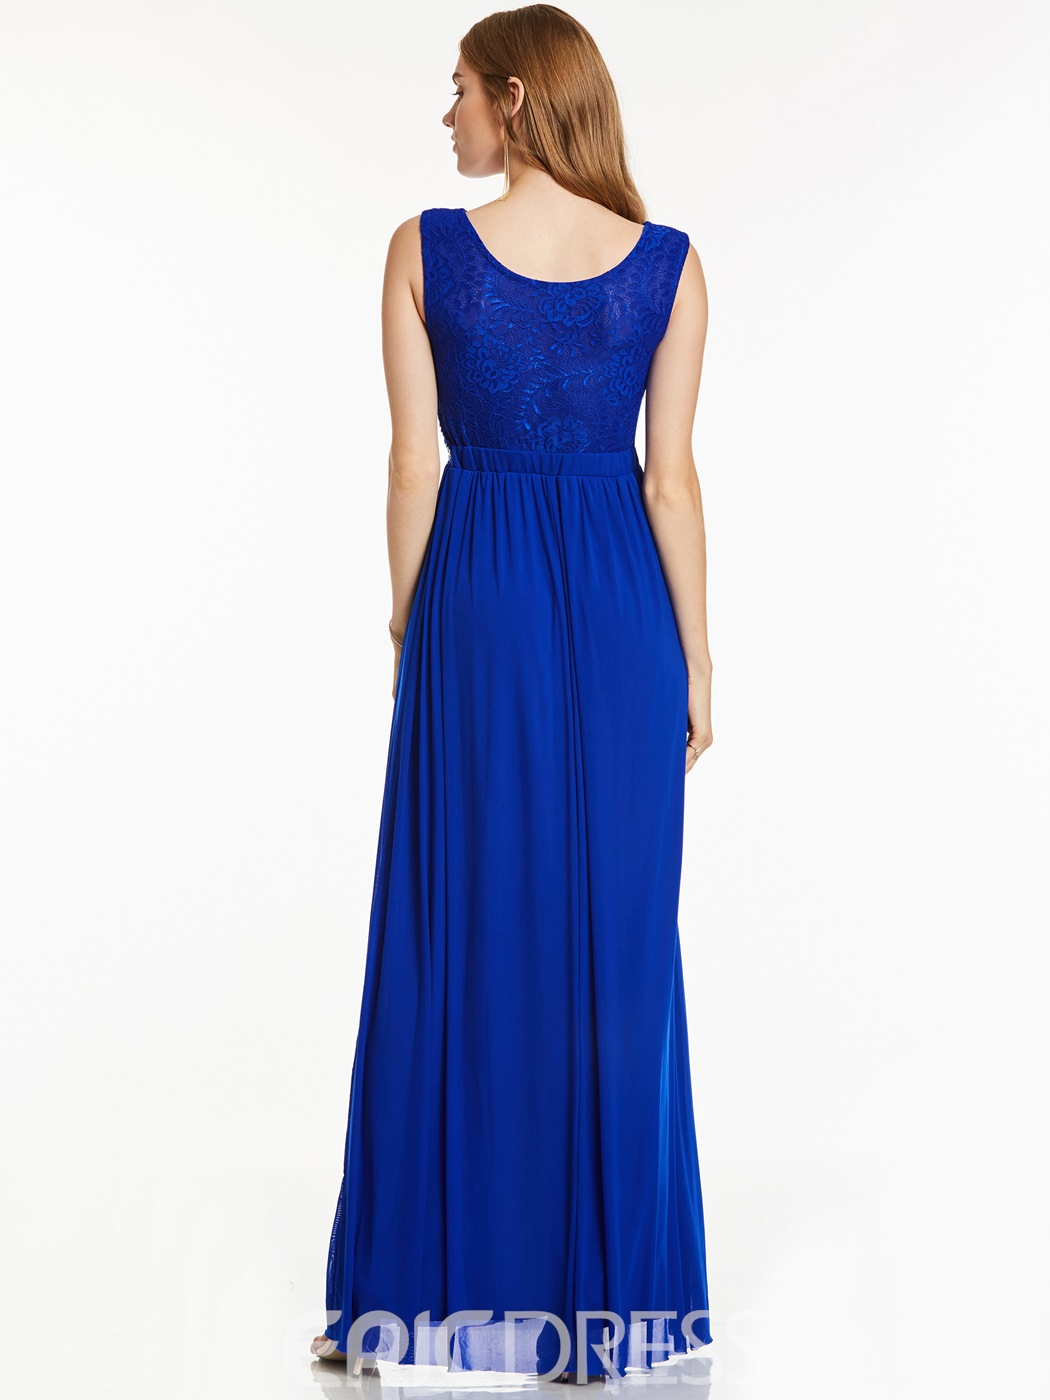 Ericdress Scoop Neck Sleeveless Beaded A Line Long Evening Dress